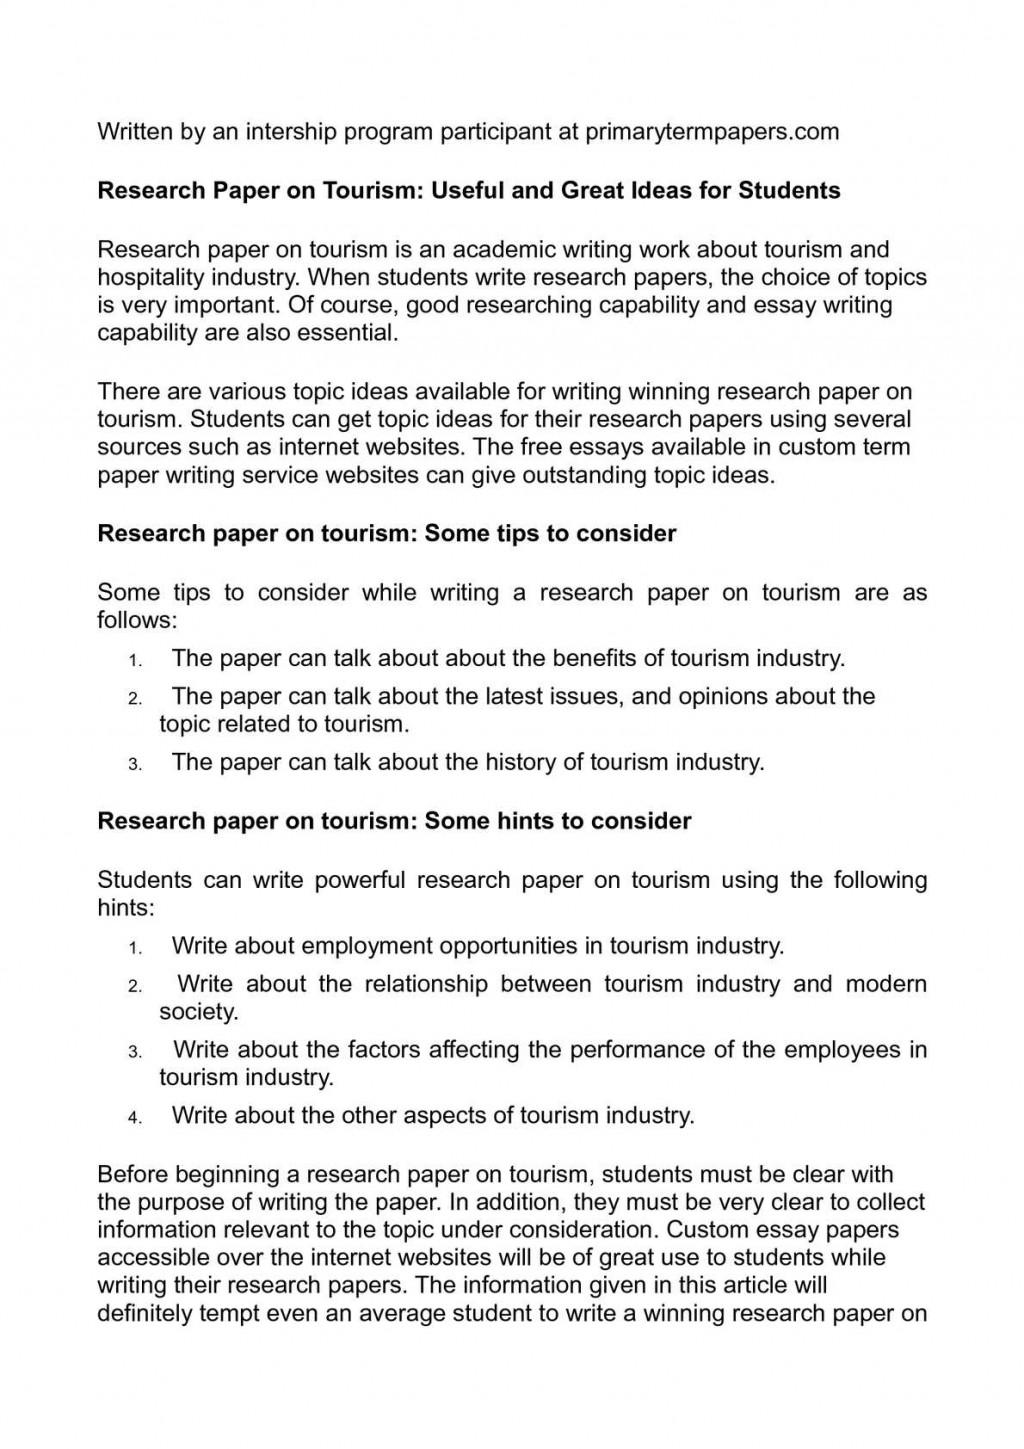 006 P1 Topics To Write Research Paper Fearsome A On Fun Good Essay Ideas Large